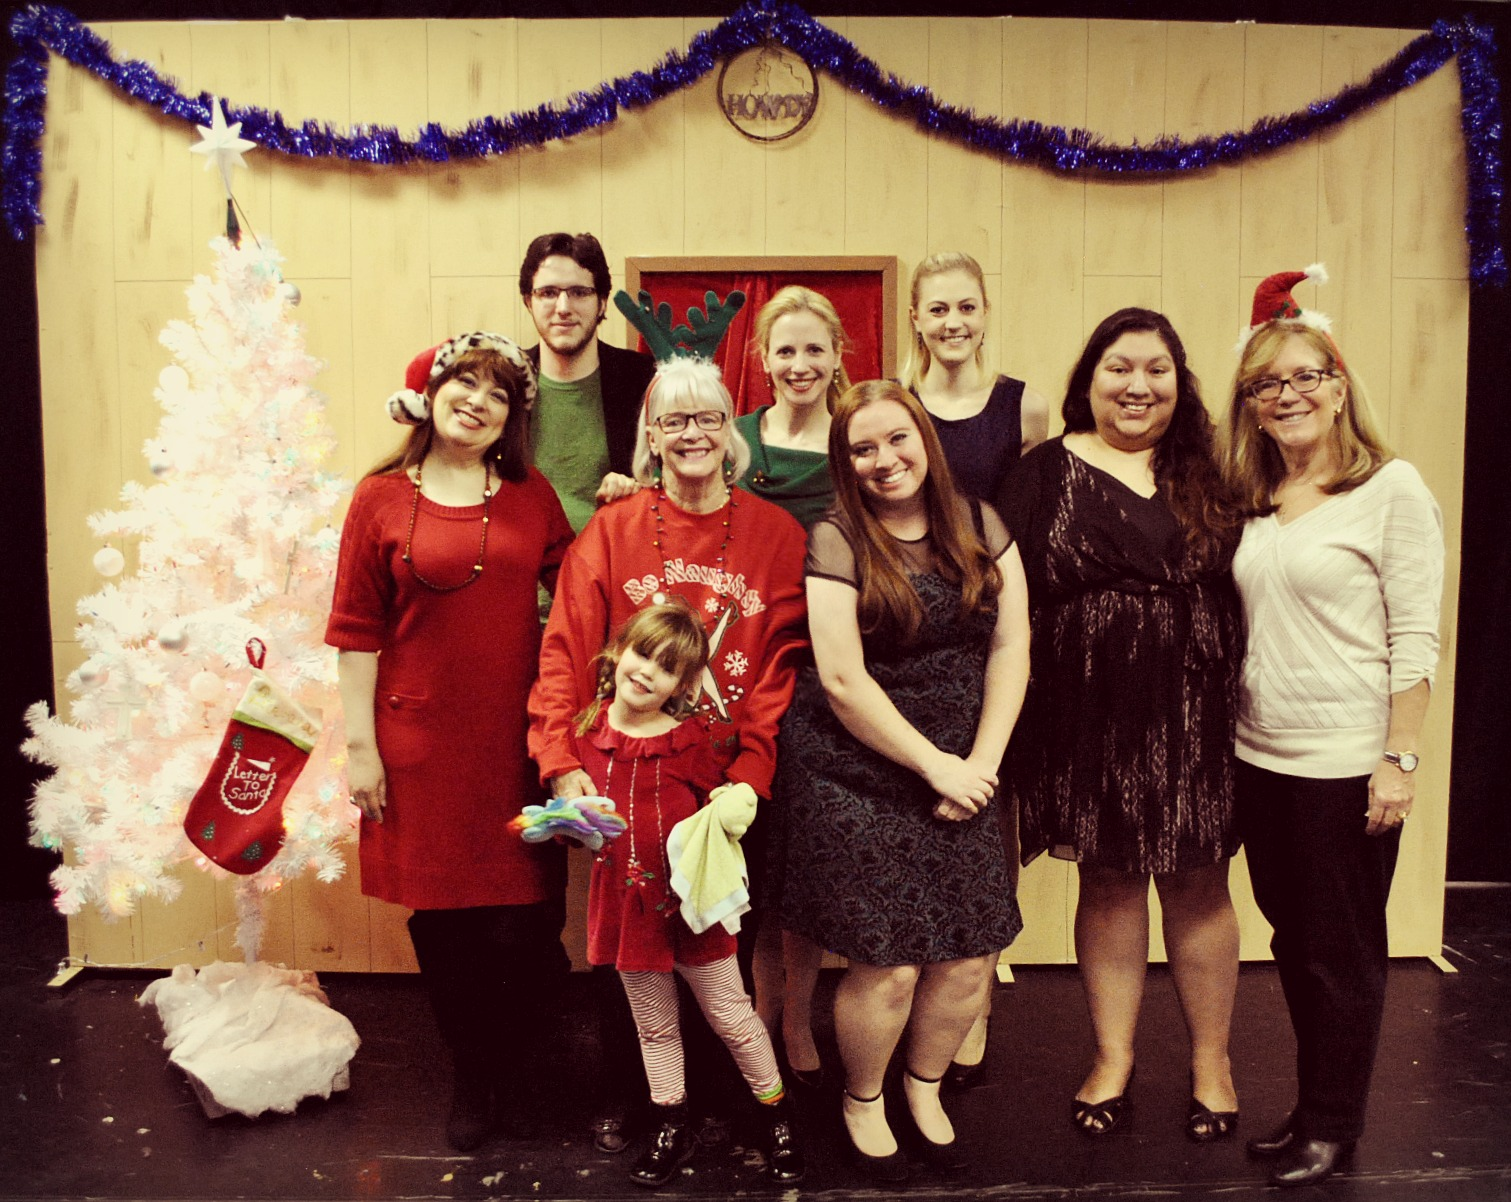 Celebrating Christmas 2014 with Lizz Reeves Fidler, Peyton Scott Geery, Barbara Walker McBain, Sarah Rodgers, Christina Nicole Epp, Christina Epps, Star Parra and Debra Jo Davey. (Photo by Brenda Jean Foley)